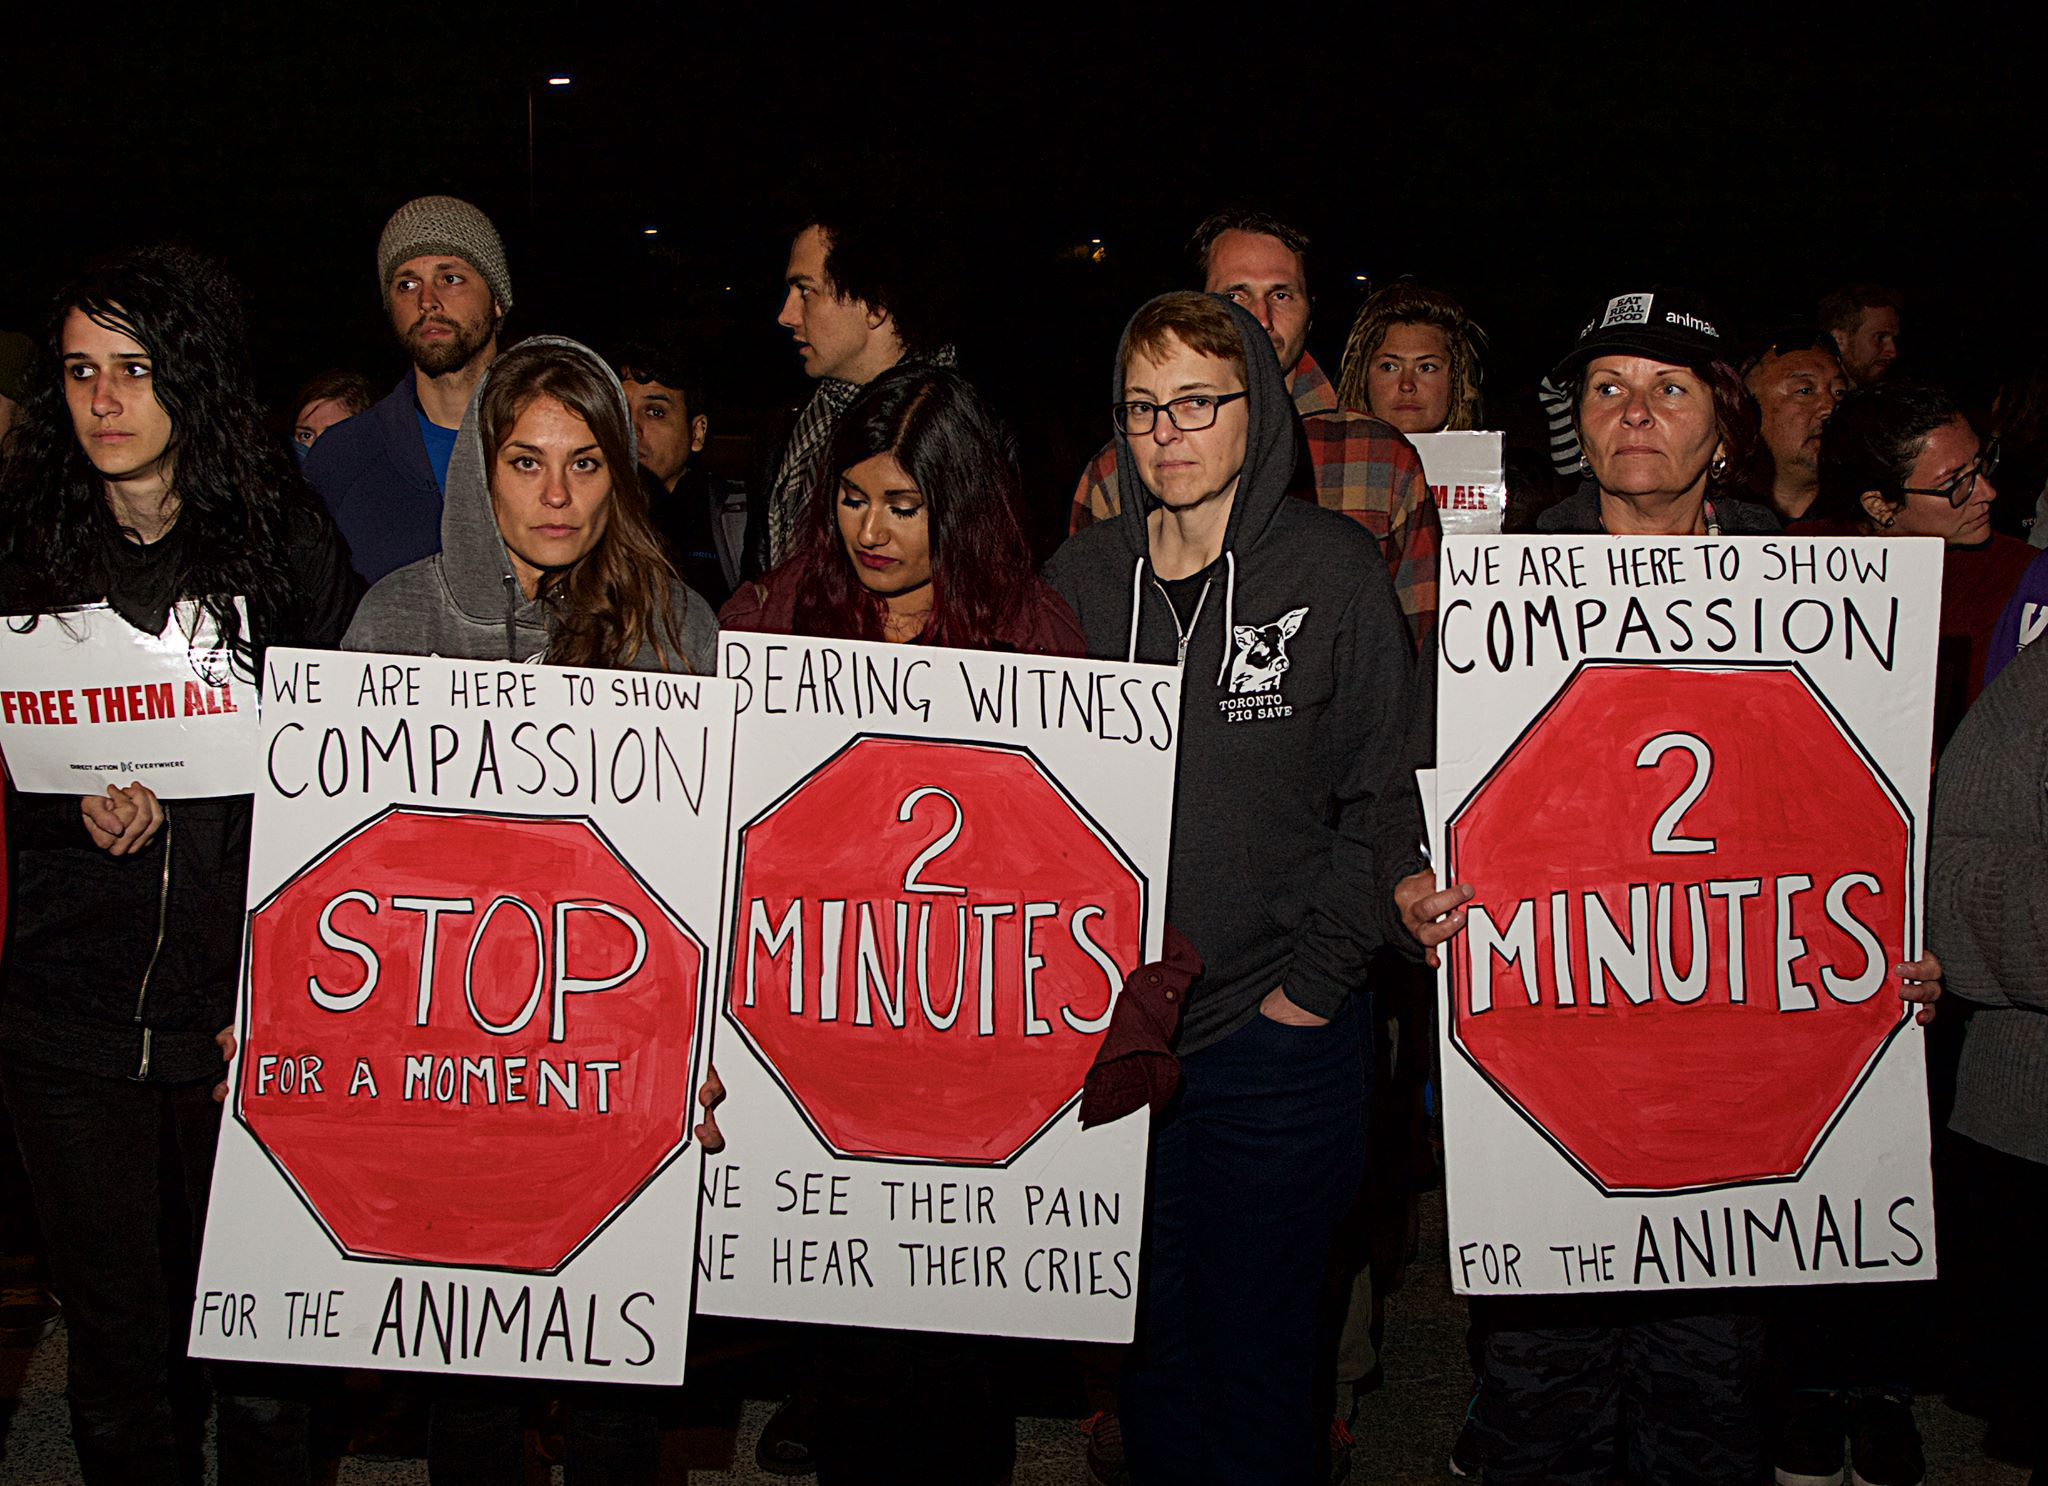 Activists stage a vigil and blockade at a slaughterhouse in Petaluma, CA. Photograph by Michael Goldberg.